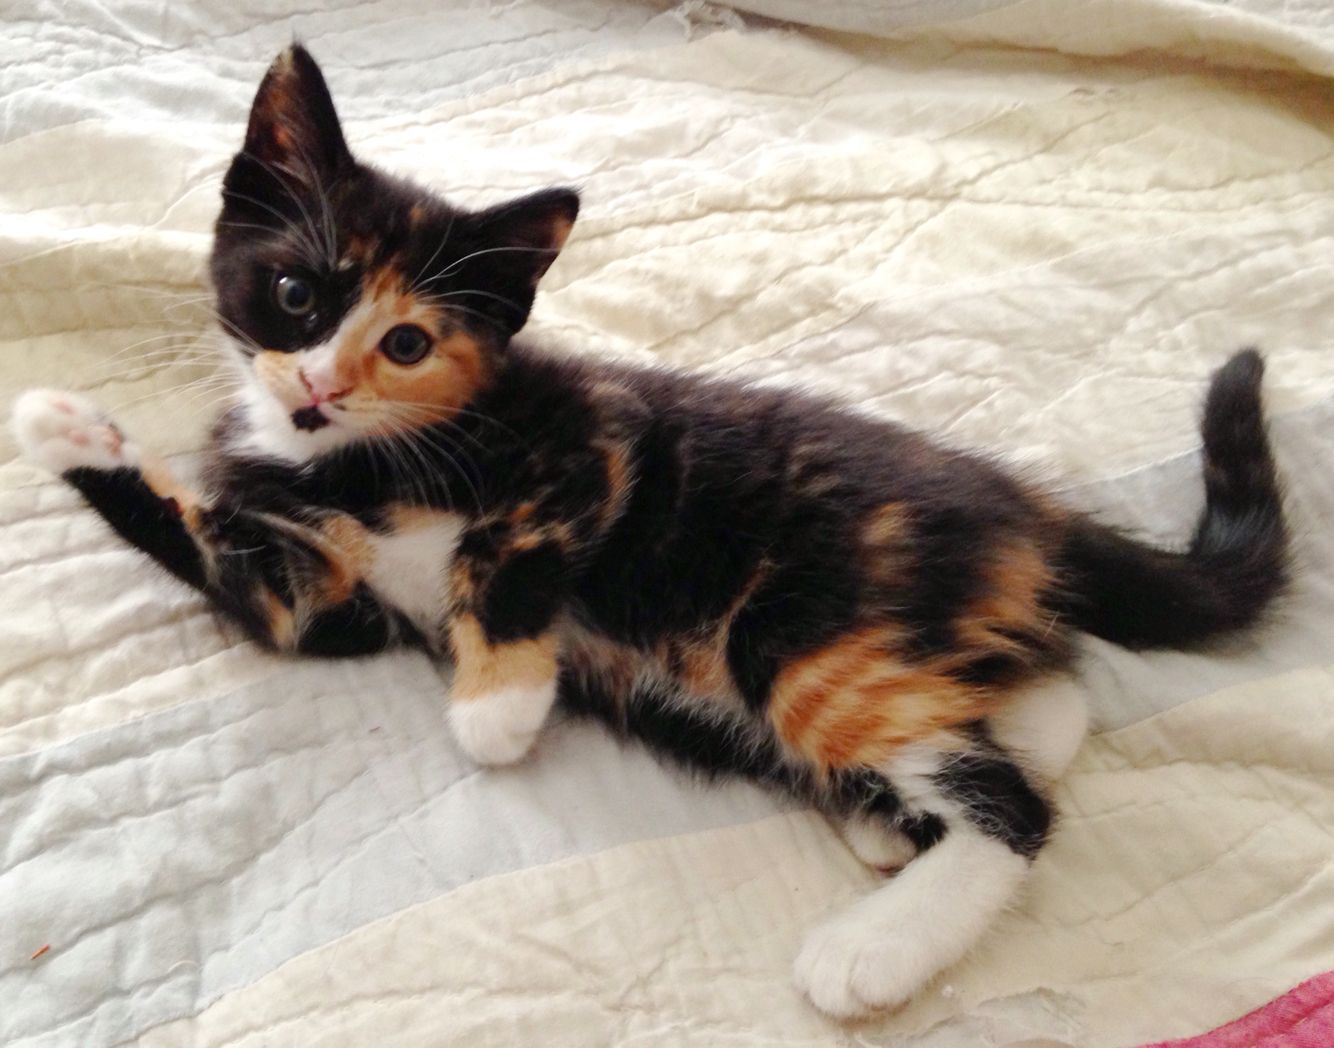 Cute Torbico Kitten Tortoise Shell Tabby And Calico Kittens And Puppies Here Kitty Kitty Kitten